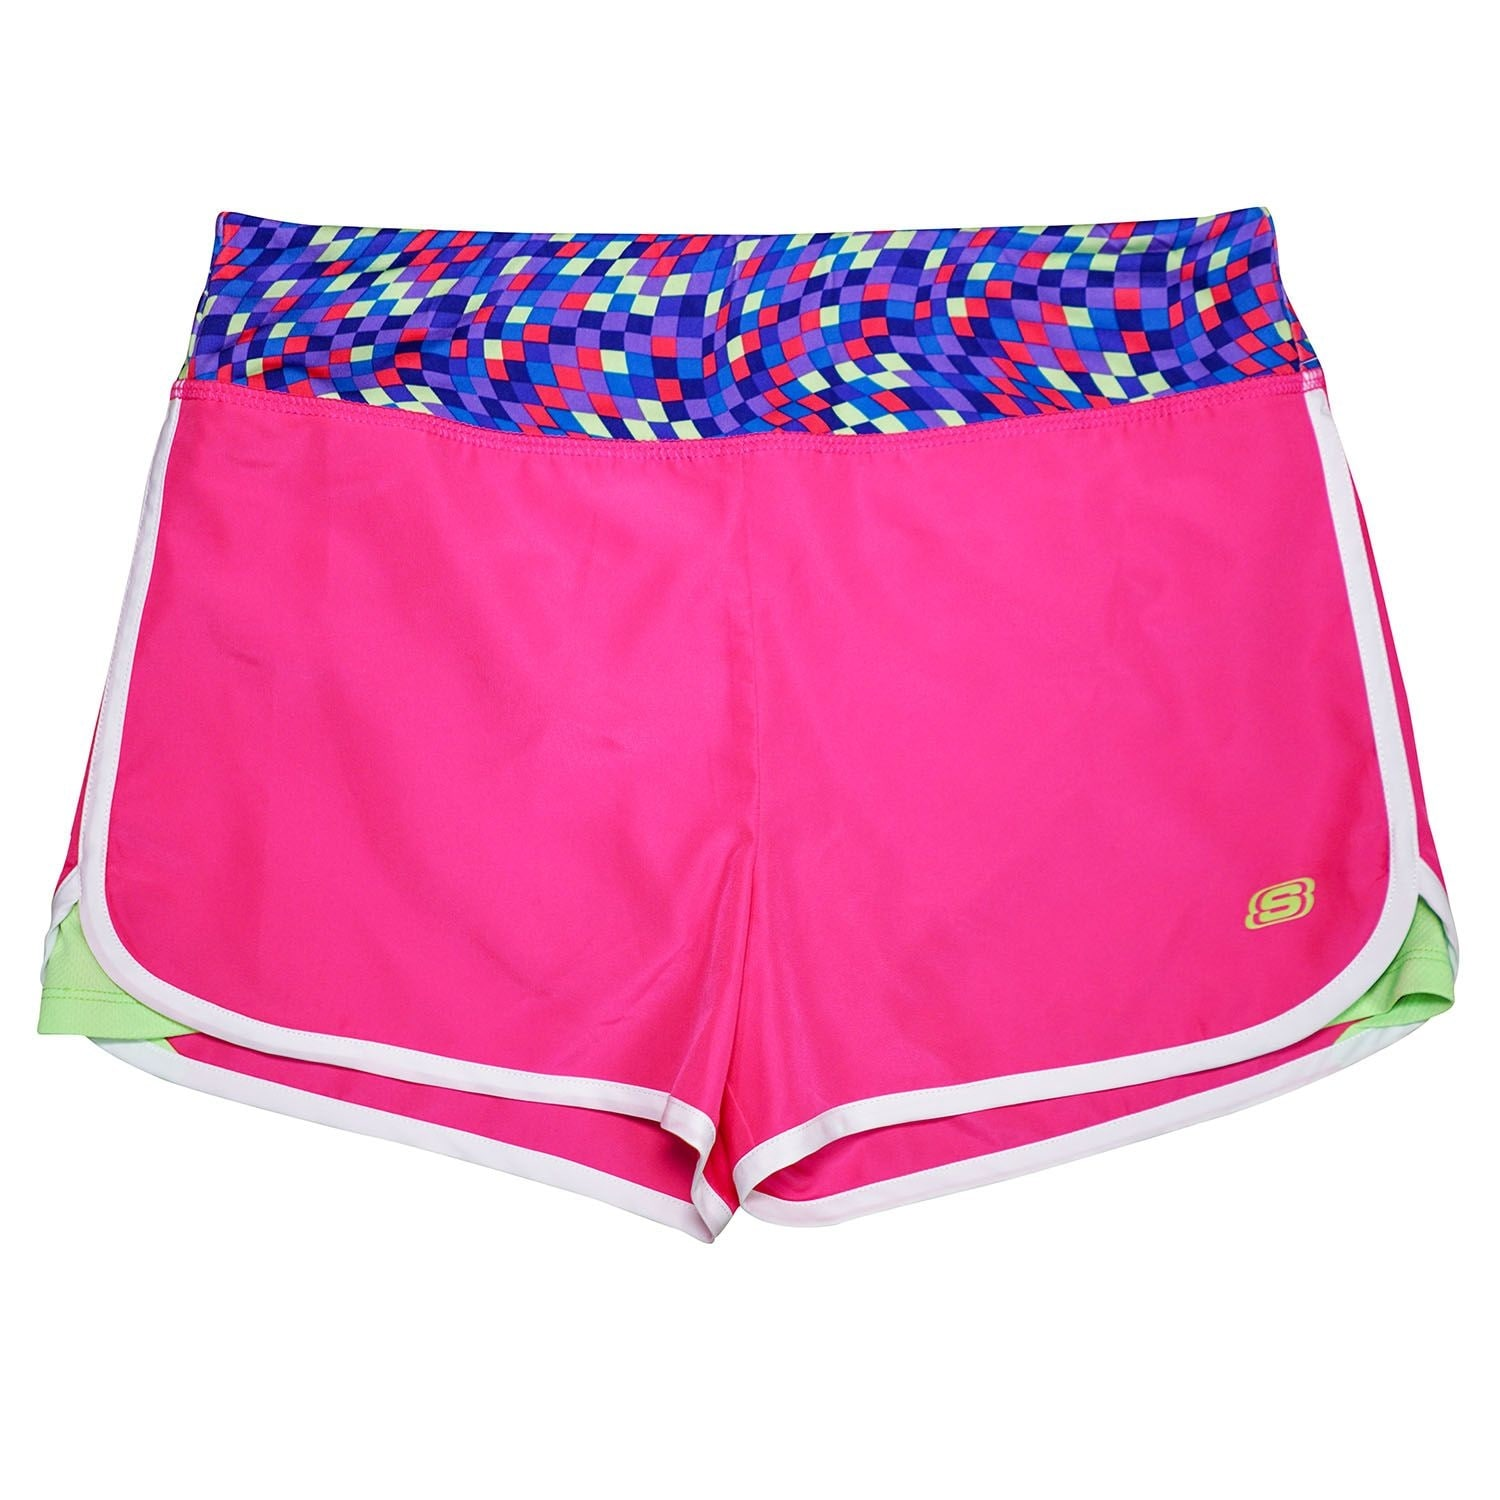 Skechers Girls' Elastic Waistband Lined Active Shorts - Overstock -  28161339 - Pink - 18 Months